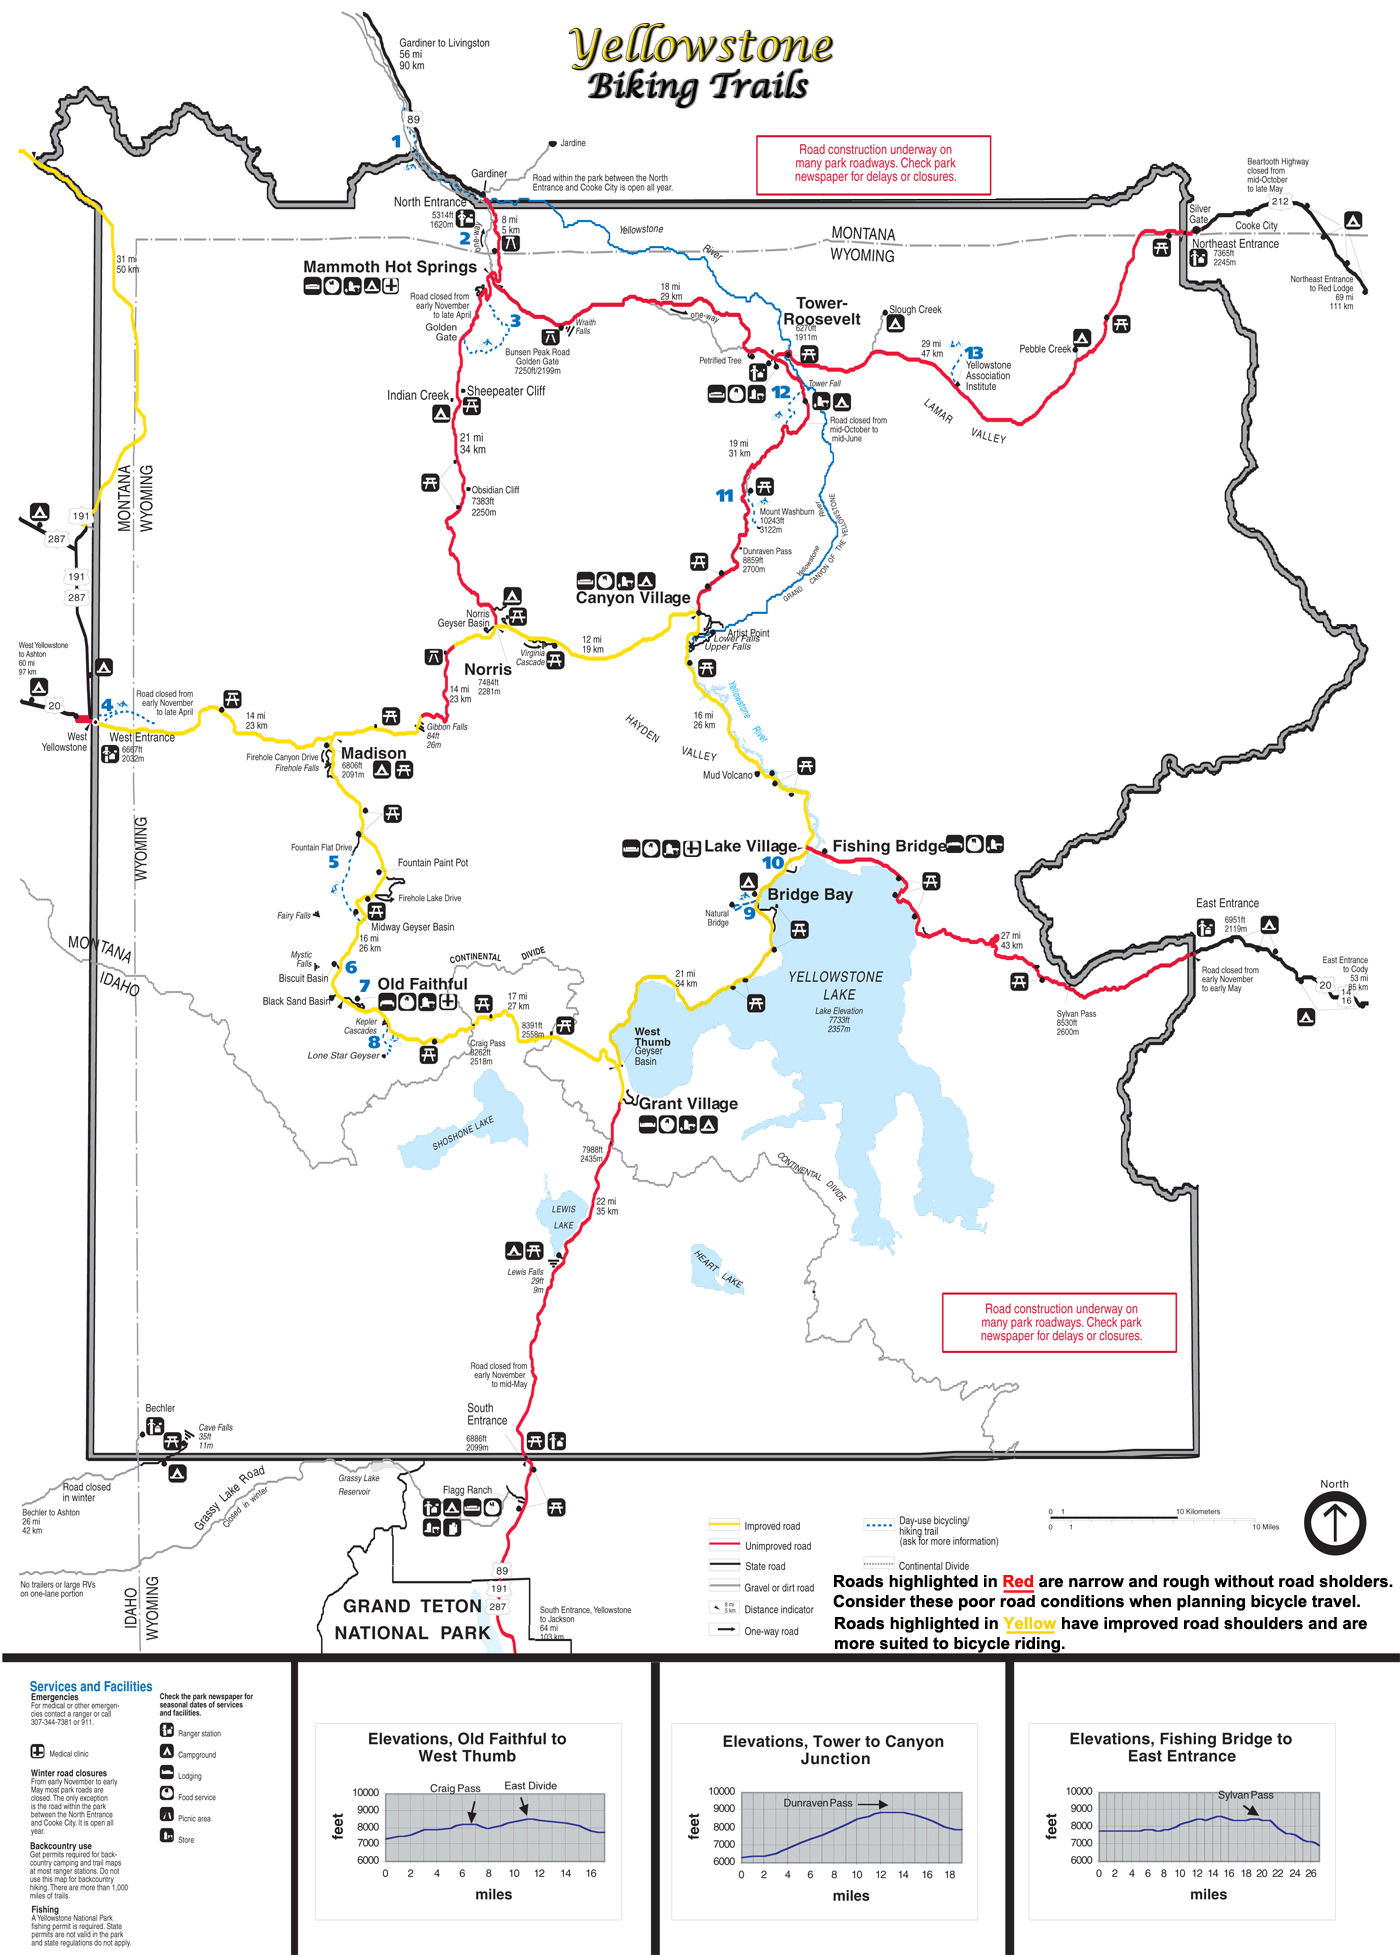 Yellowstone National Park Biking ~ Yellowstone Up Close and ... on map of glacier national park, map of white house entrances, map to yellowstone east tower, map showing yellowstone national park, map rocky mountains tn, map of west philadelphia, map of grand canyon entrances, map oregon to yosemite,